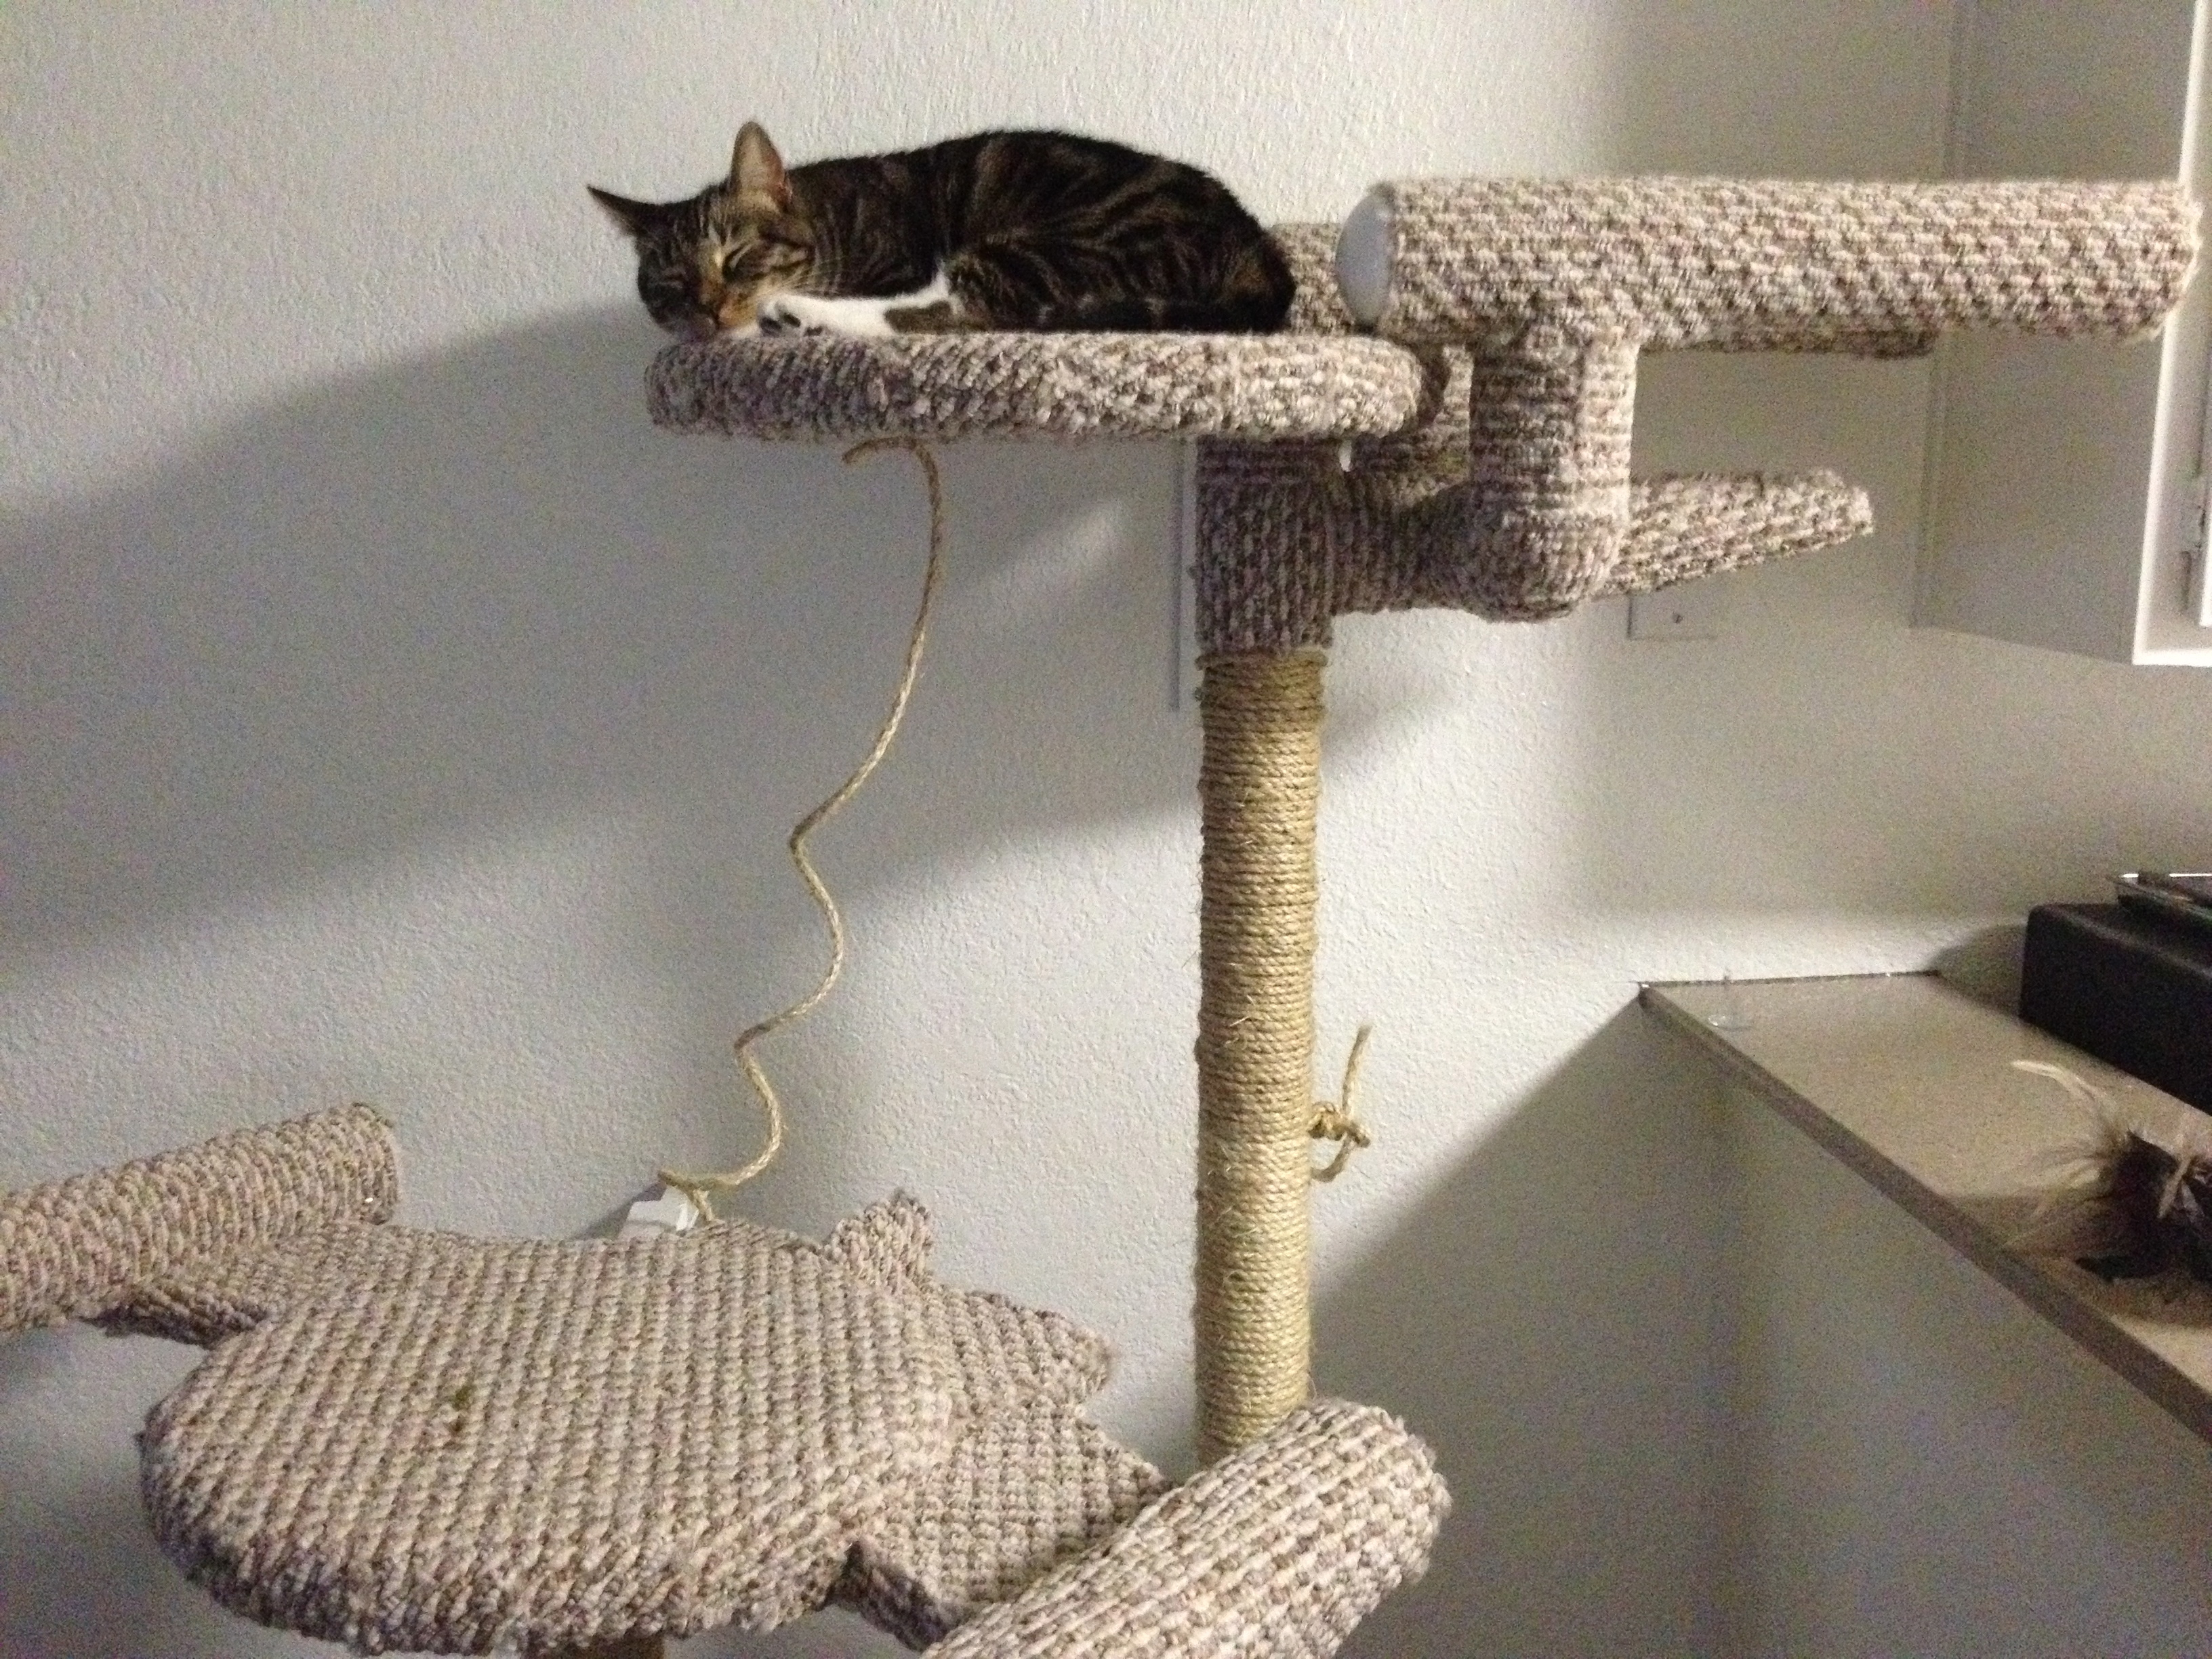 Star Trek Cat Tree (with Enterprise and Romulan Bird of Prey)